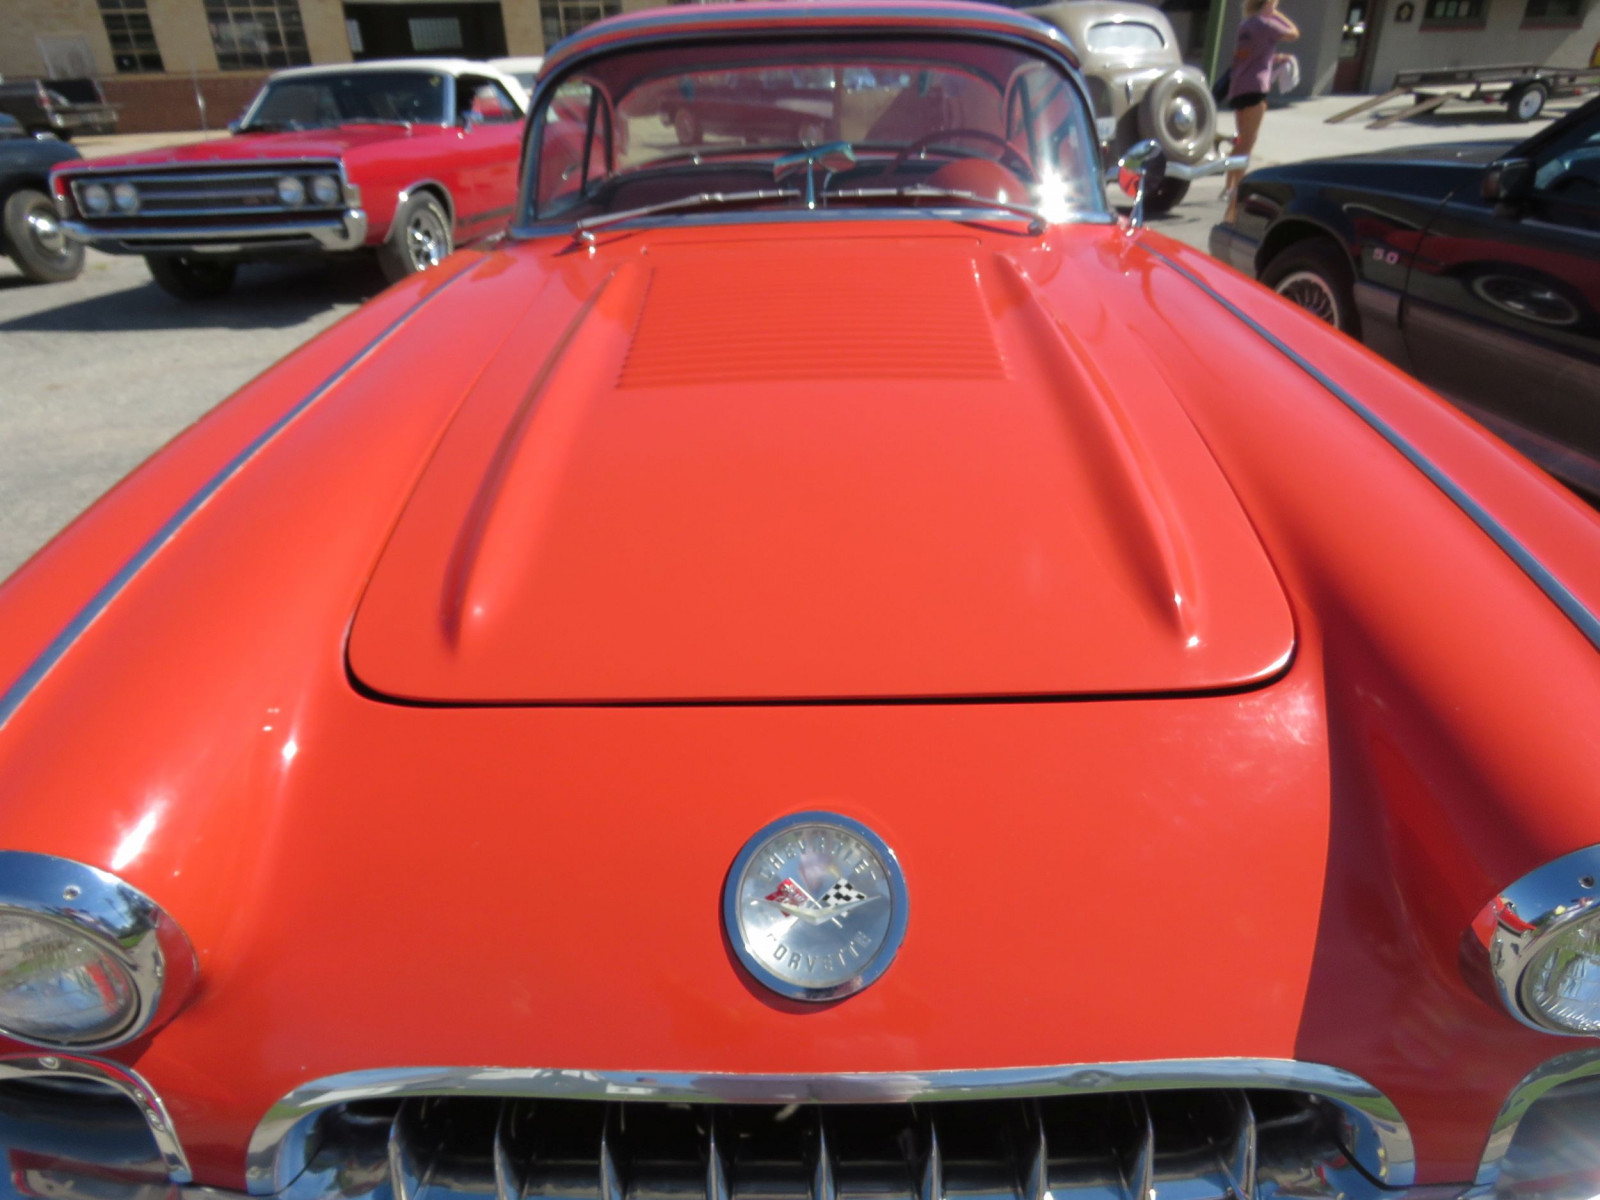 1958 CHEVROLET CORVETTE FUEL INJECTED ROADSTER - Image 12